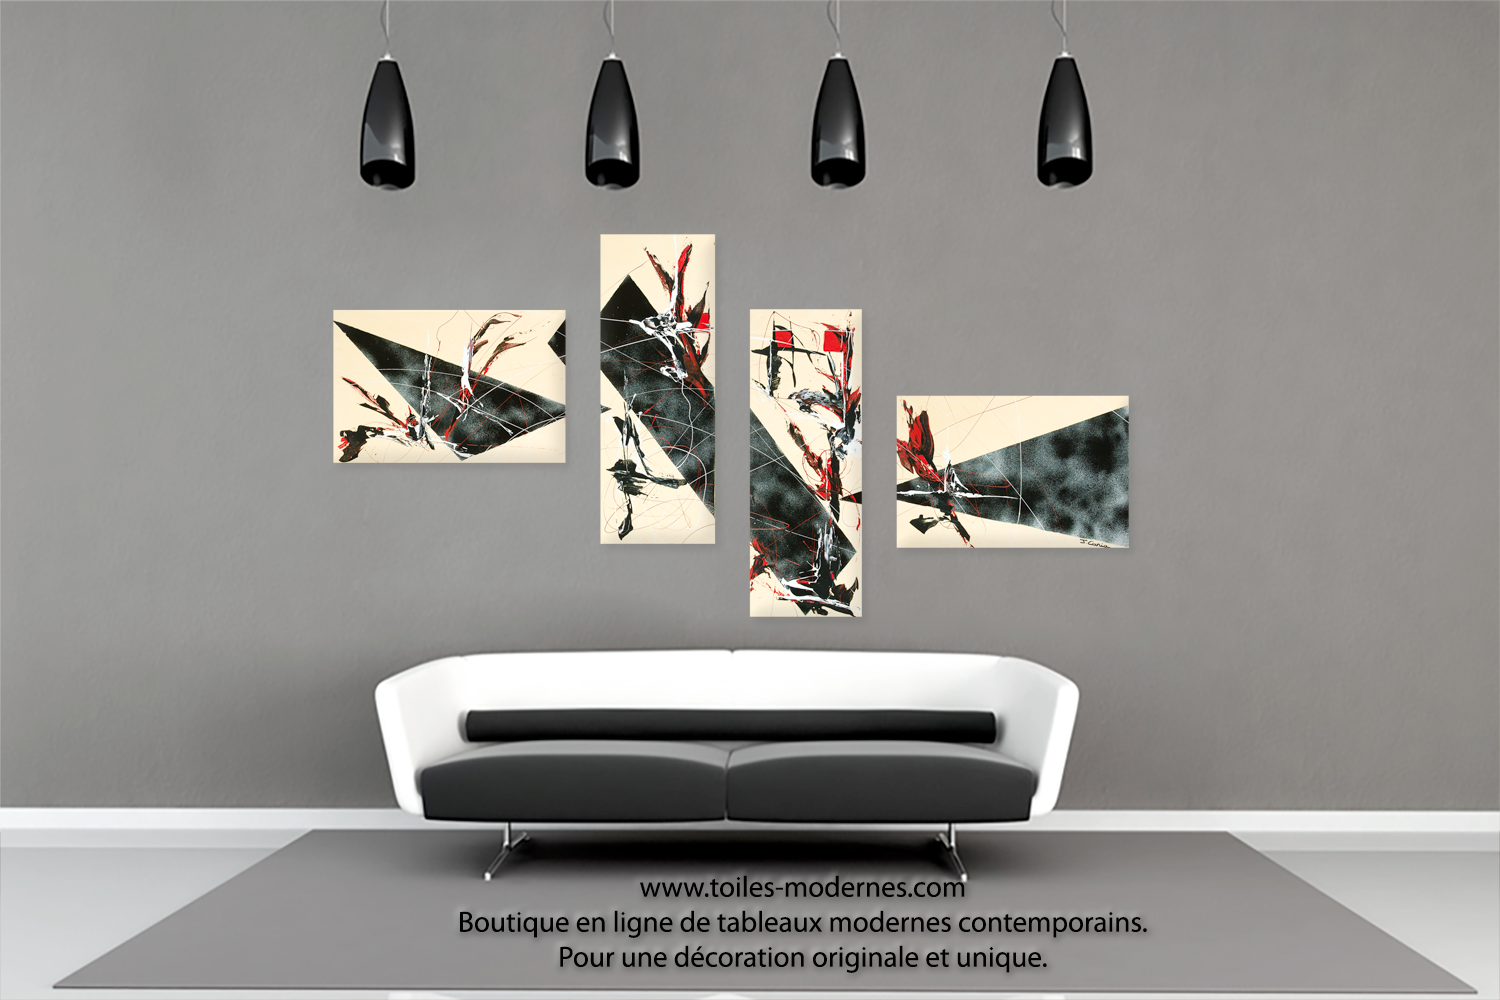 tableau quadripyque d co beige et noire ultra design dimensions importantes peinture d 39 art moderne. Black Bedroom Furniture Sets. Home Design Ideas